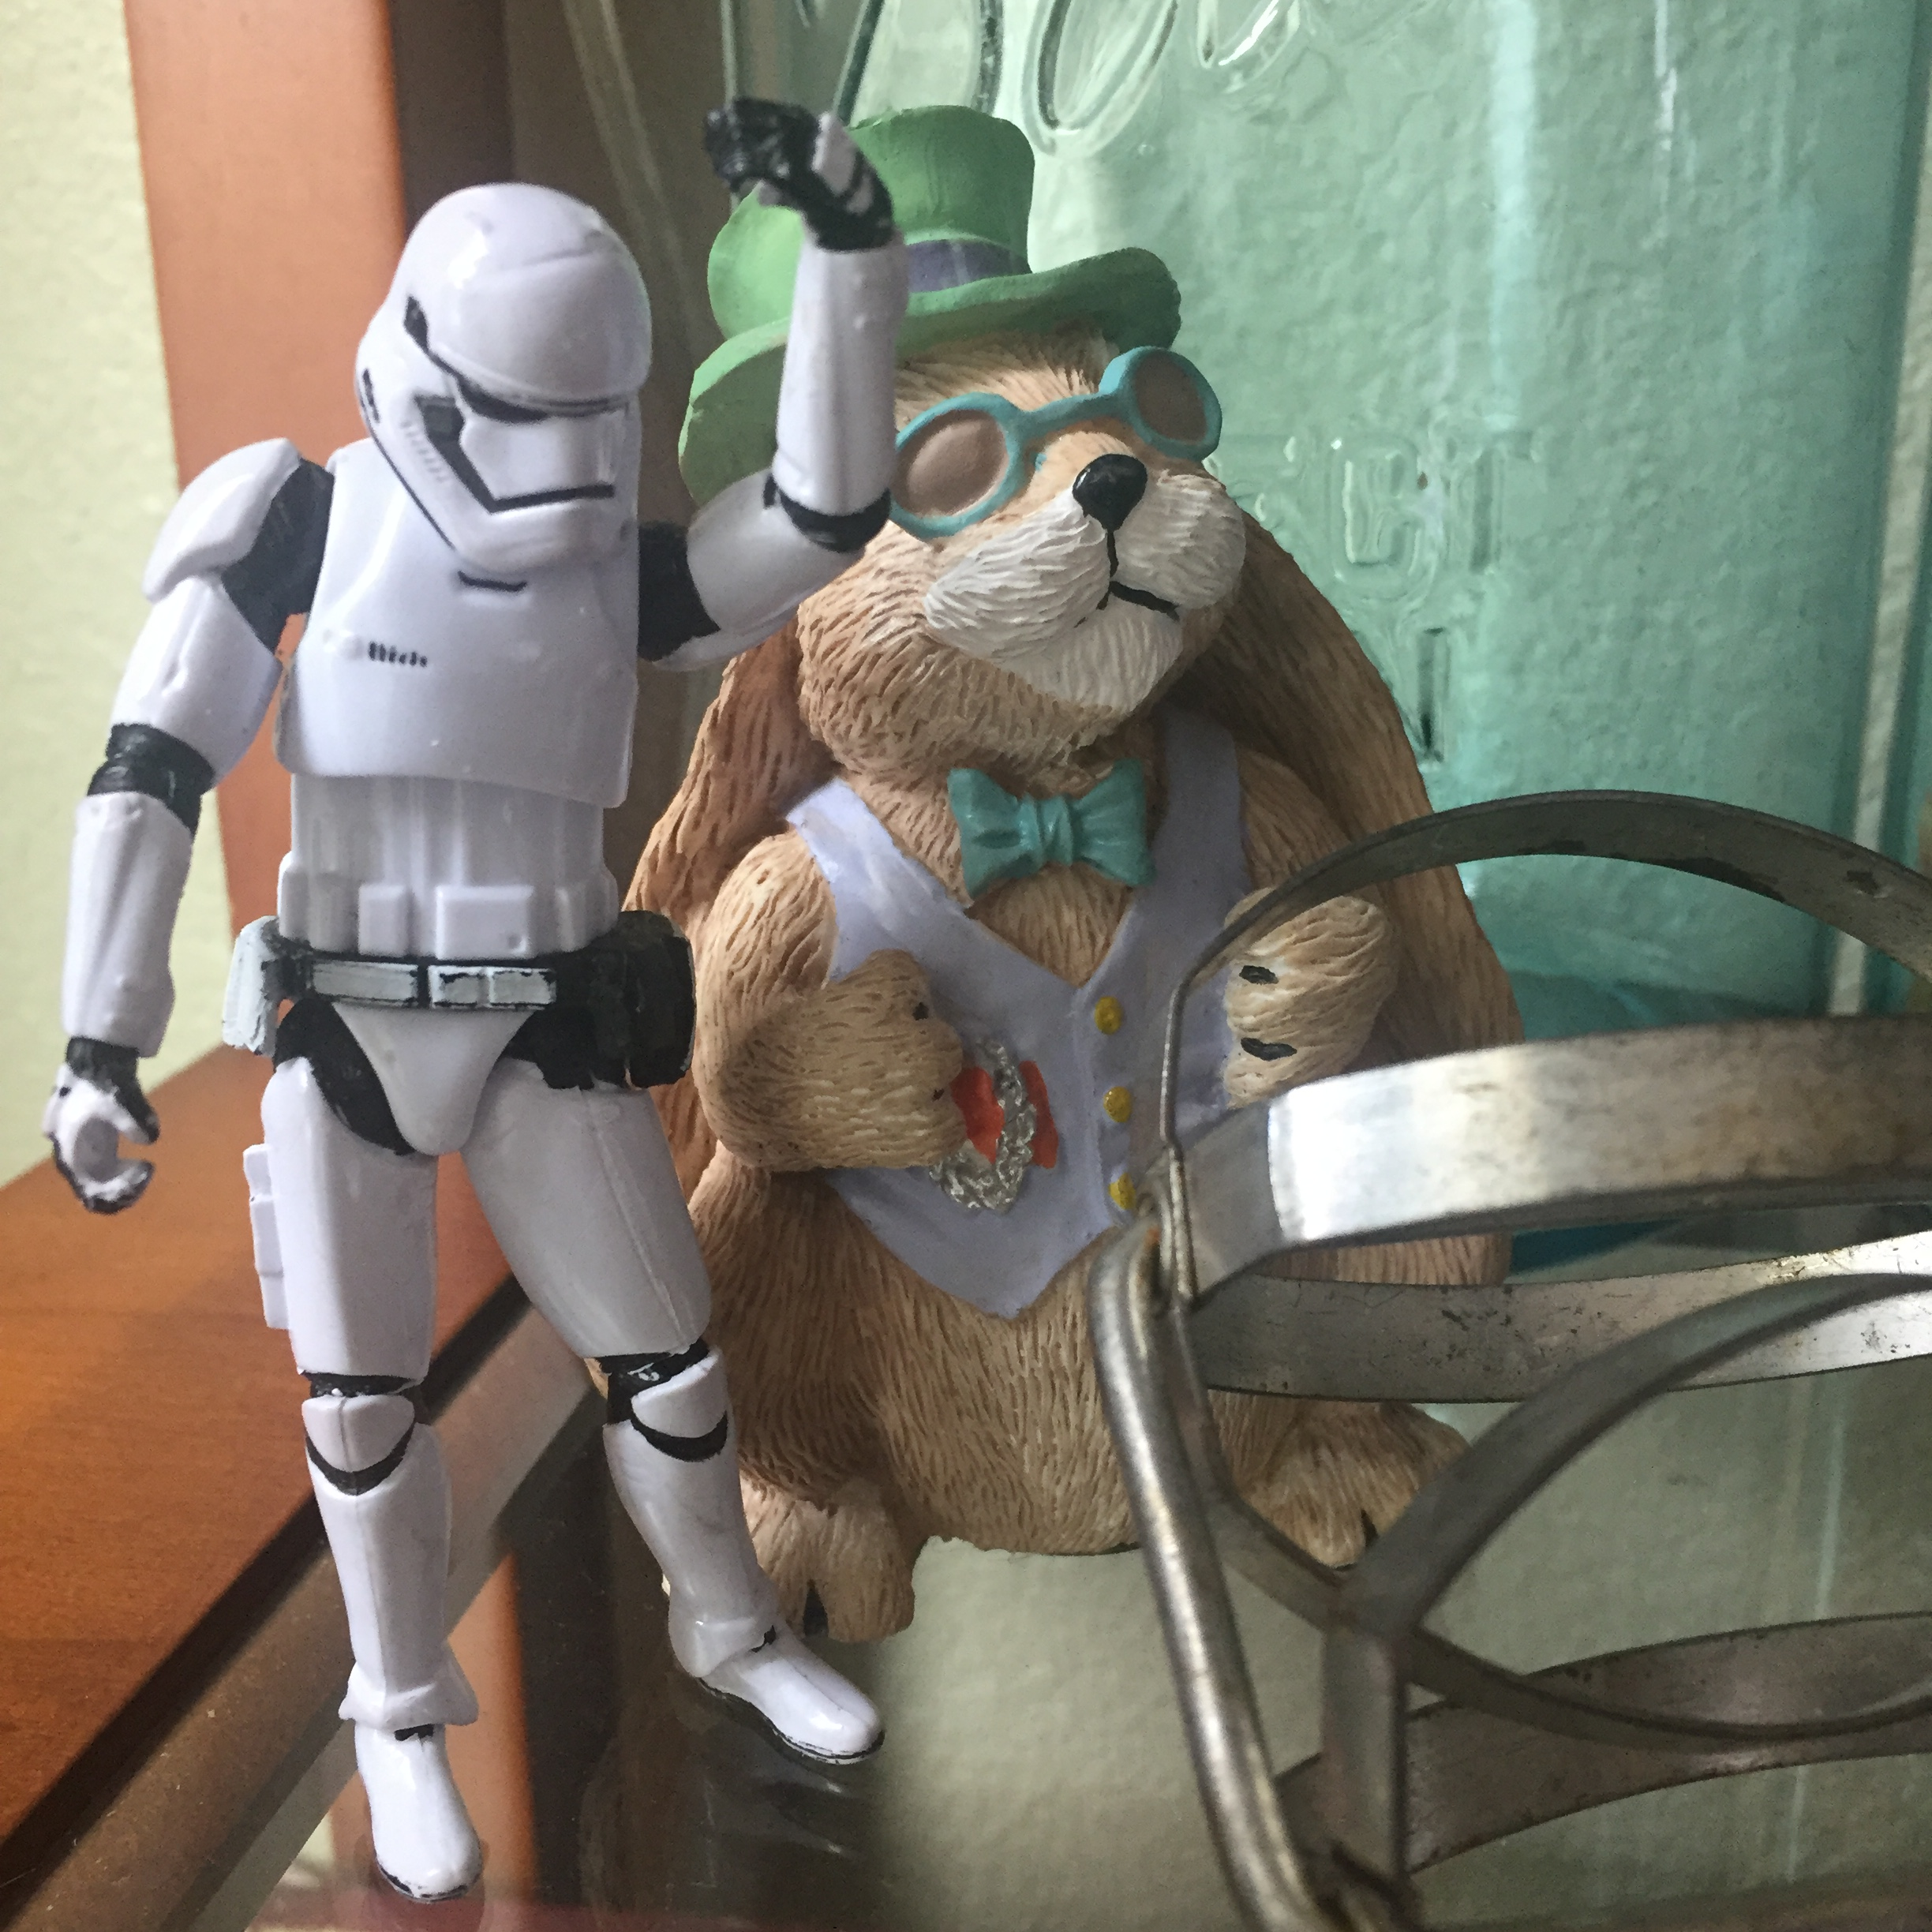 stormtrooper easter bunny apr 6 season silverwood